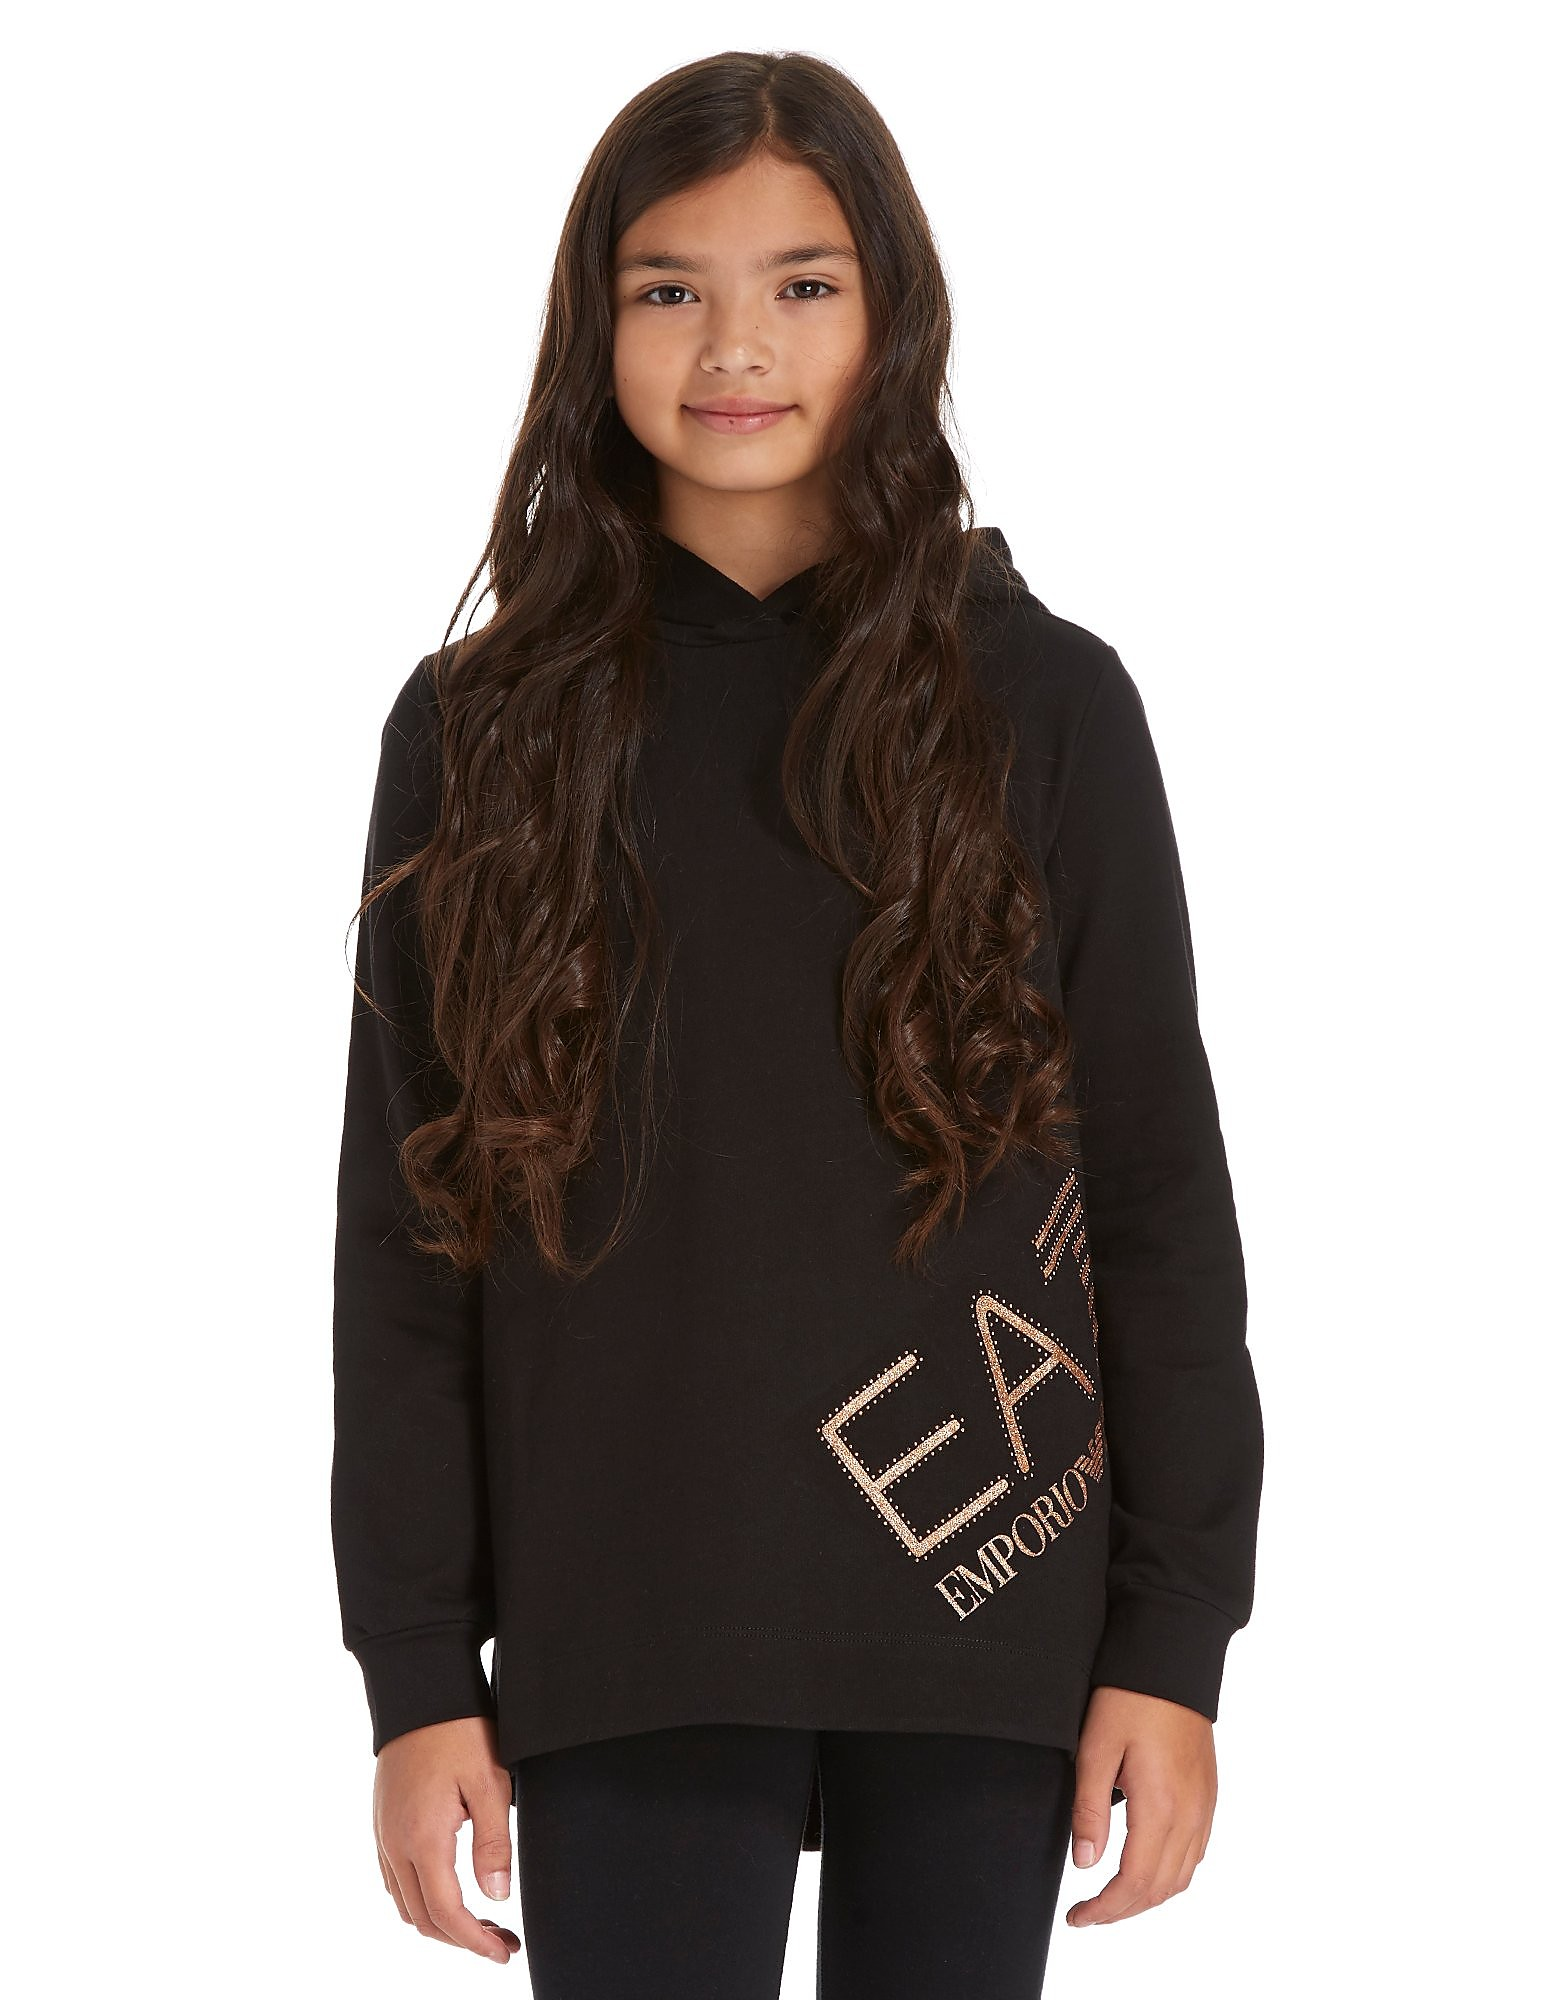 Emporio Armani EA7 Sweat Longline Junior